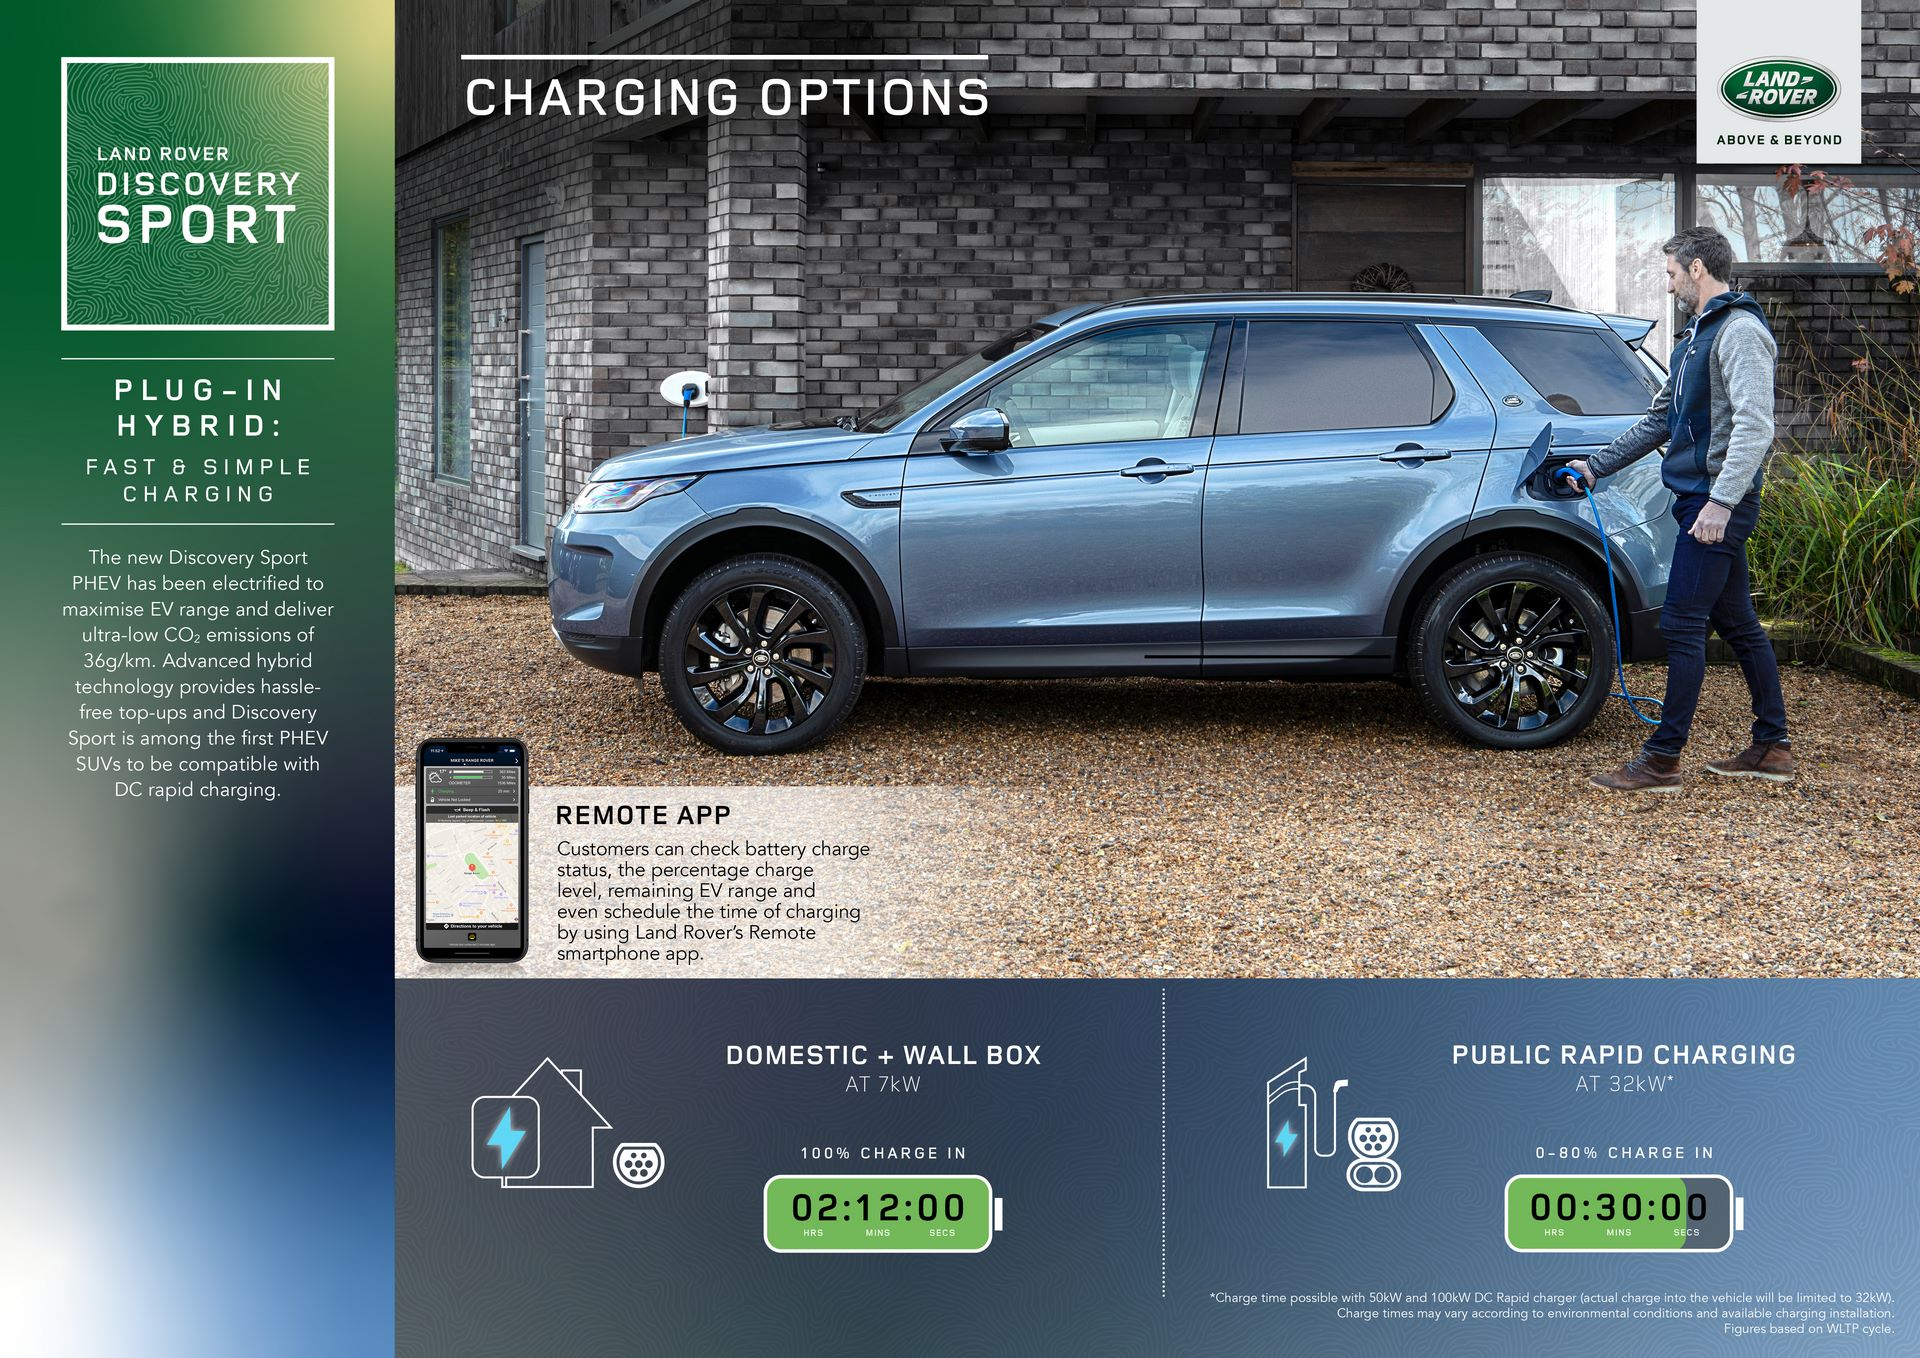 Plug-in-hybrid-Land-Rover-Discovery-Sport-PHEV-7